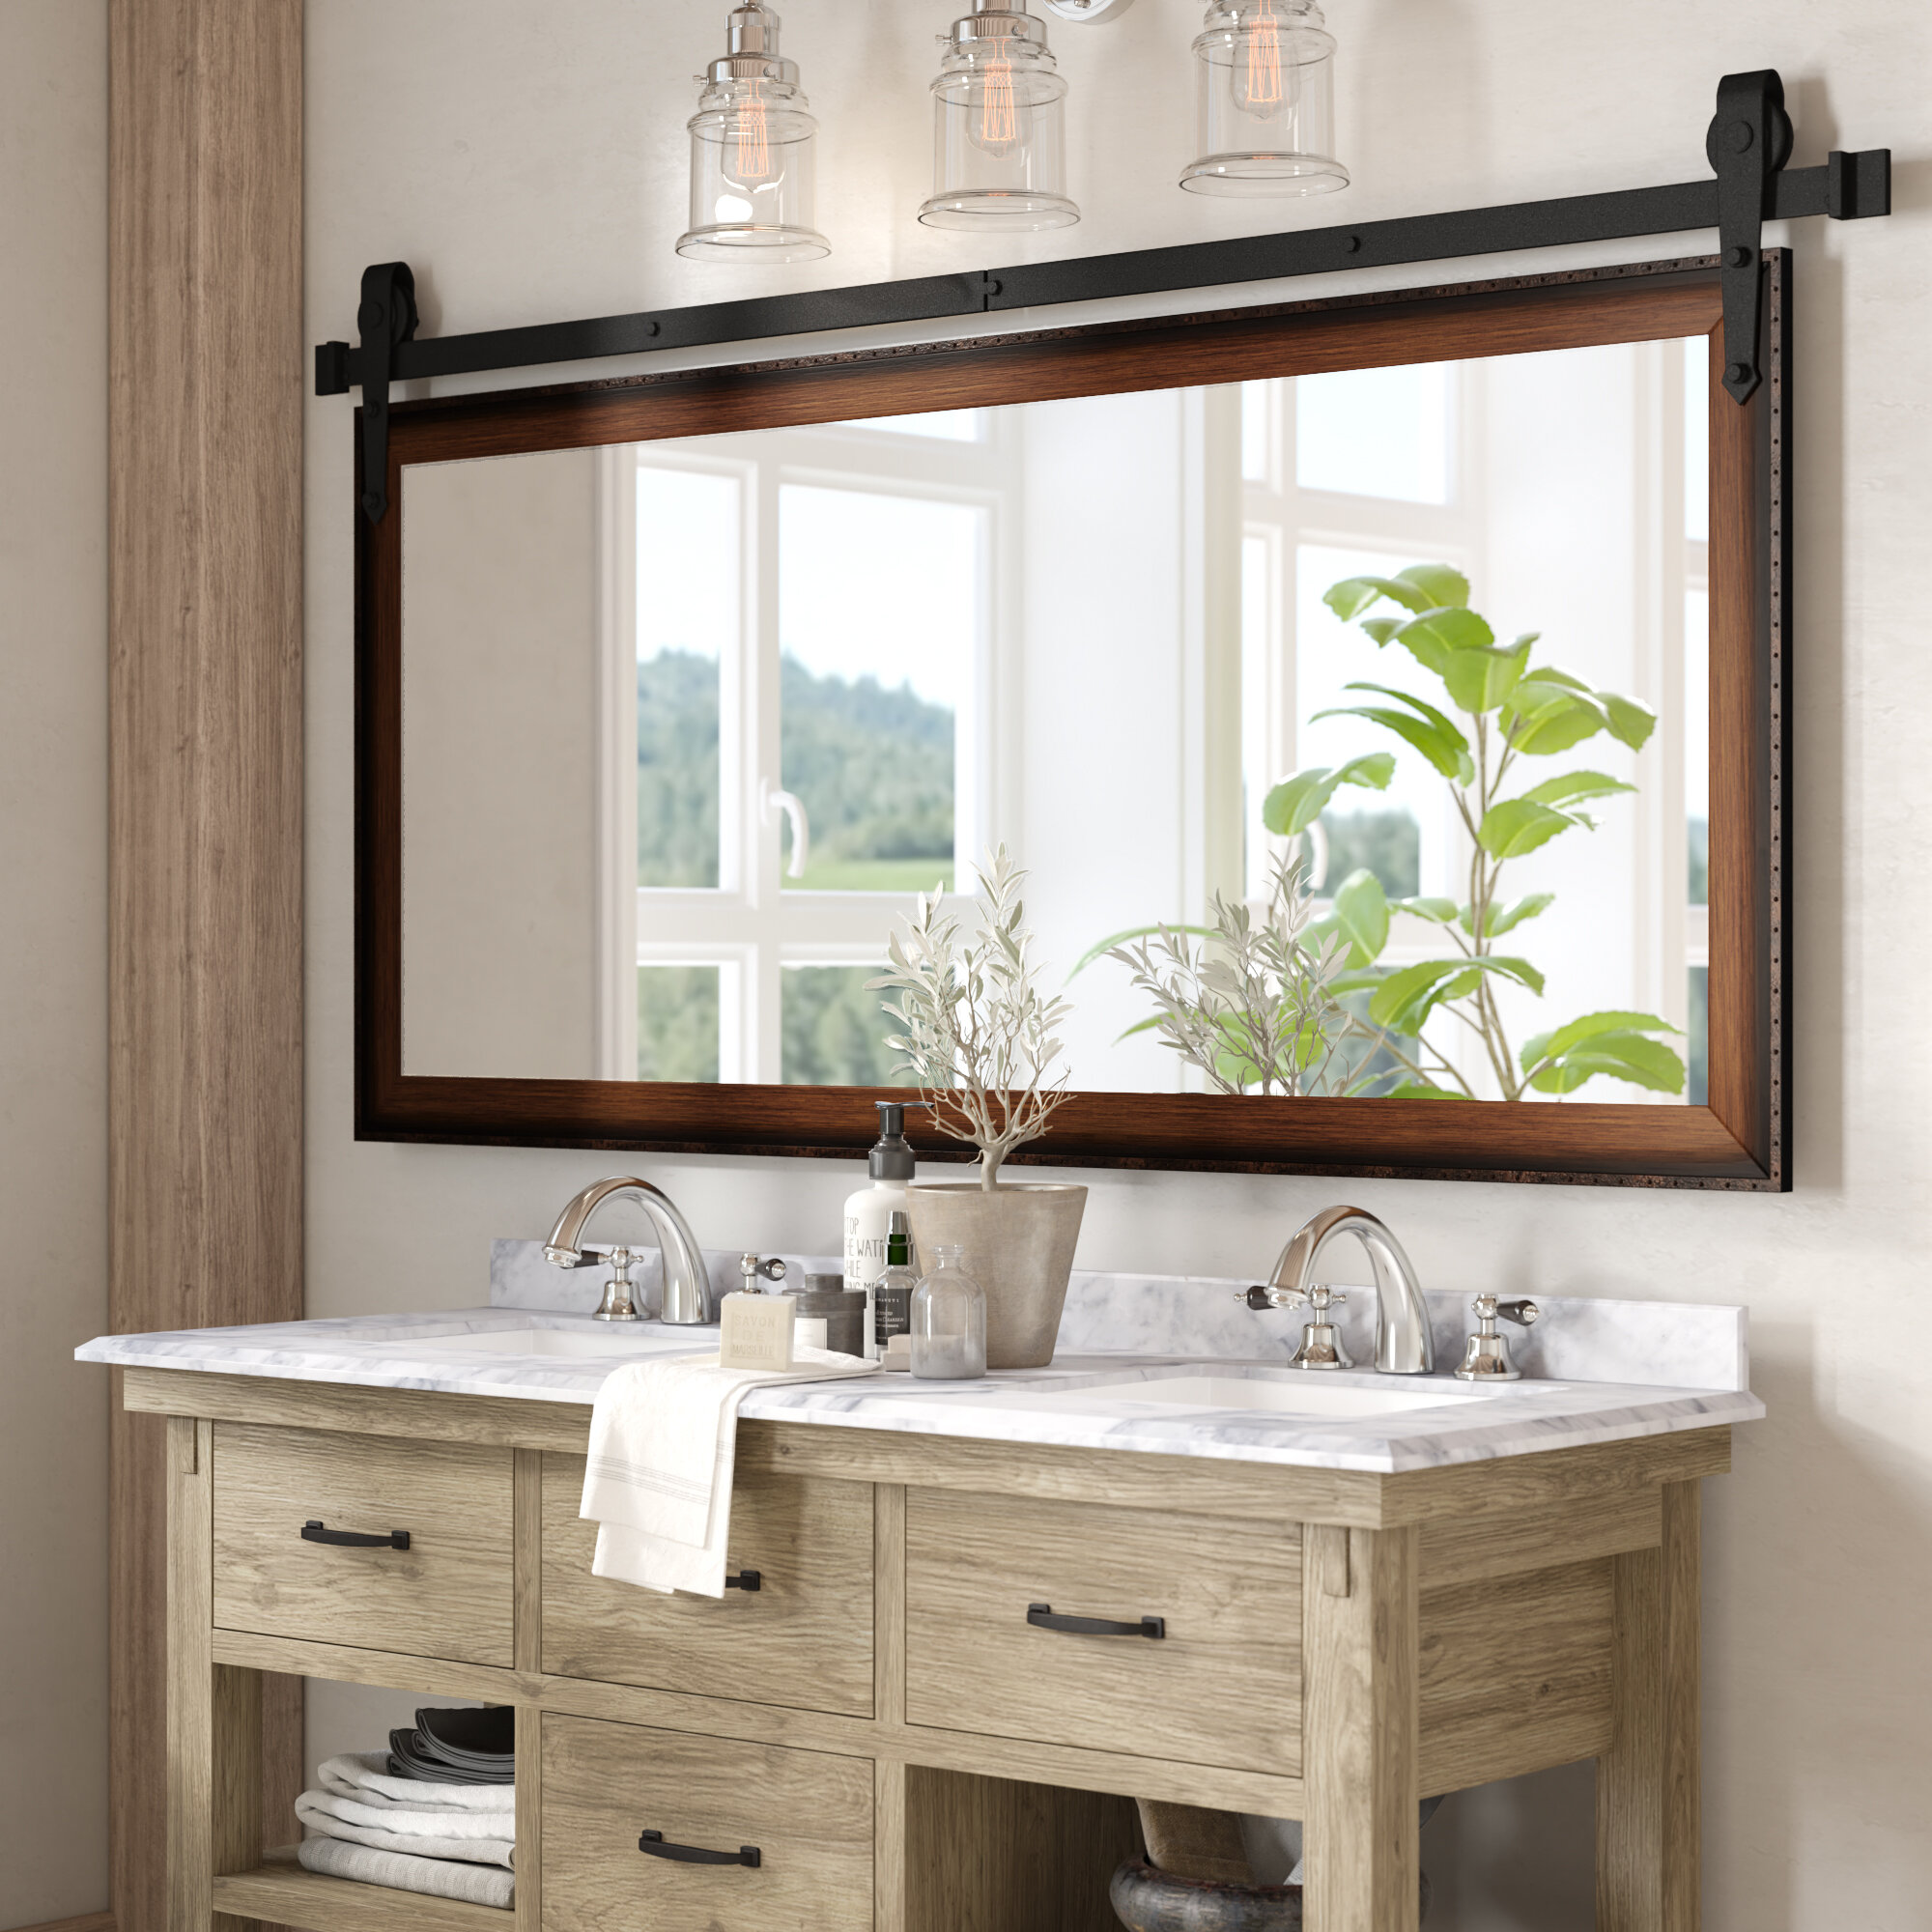 Large Oversized Laurel Foundry Modern Farmhouse Vanity Mirrors You Ll Love In 2021 Wayfair